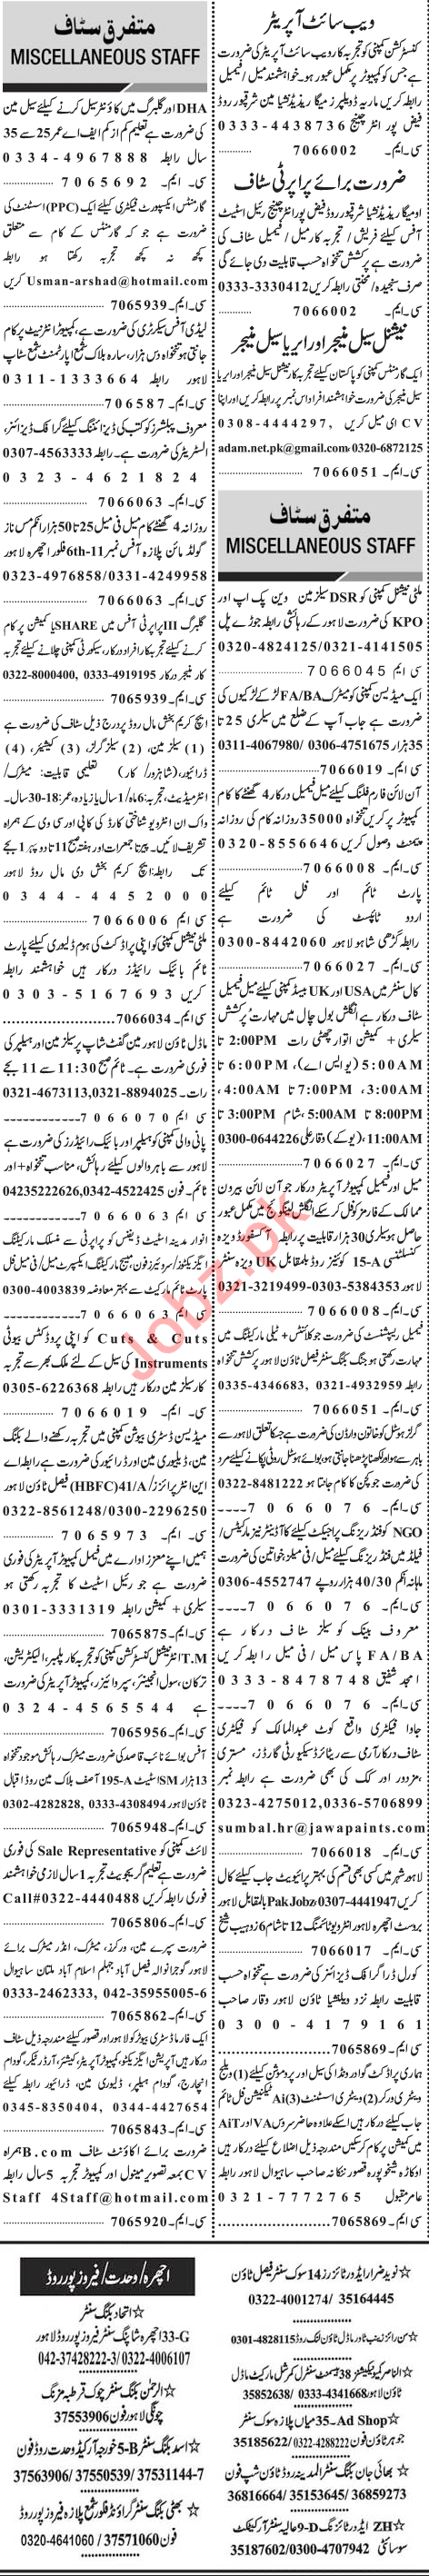 Jang Sunday Classified Ads 19th May 2019 for Miscellaneous